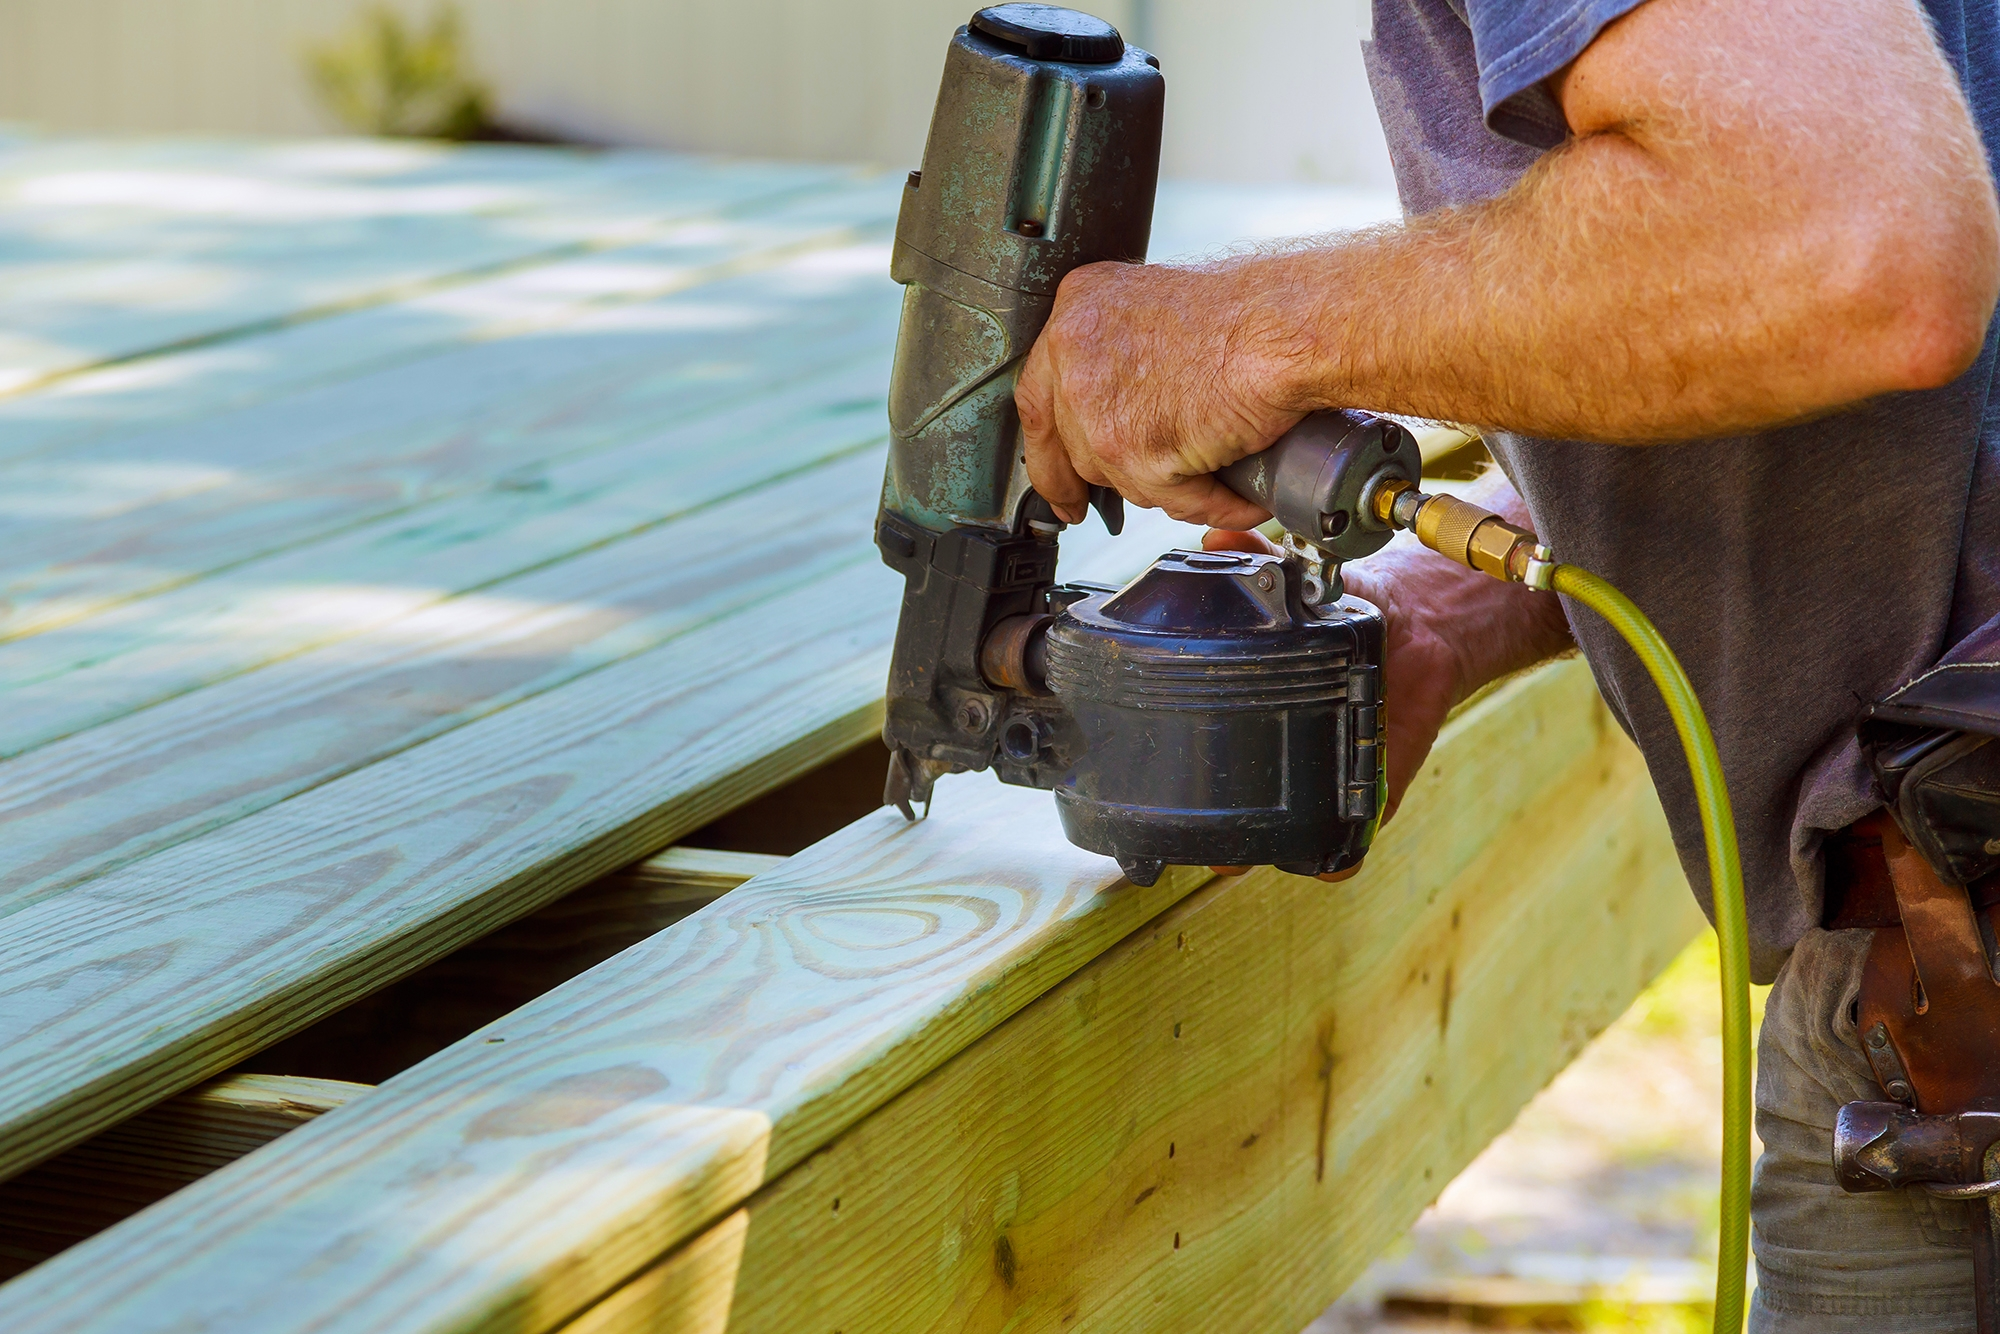 Installing Wood on deck, patio construction man using pneumatic nailer air gun